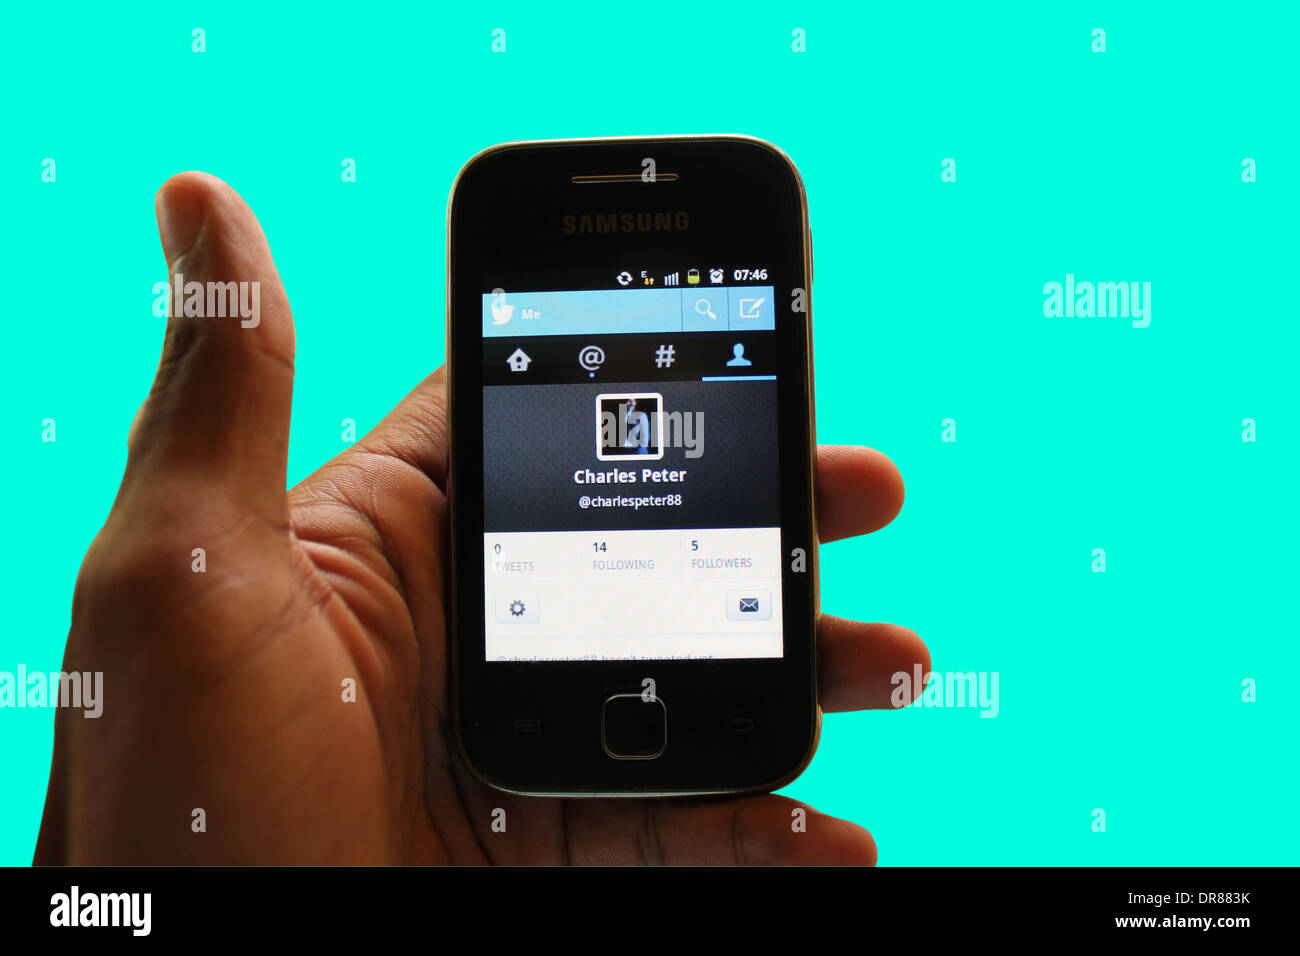 Twitter homepage on a smartphone - Stock Image